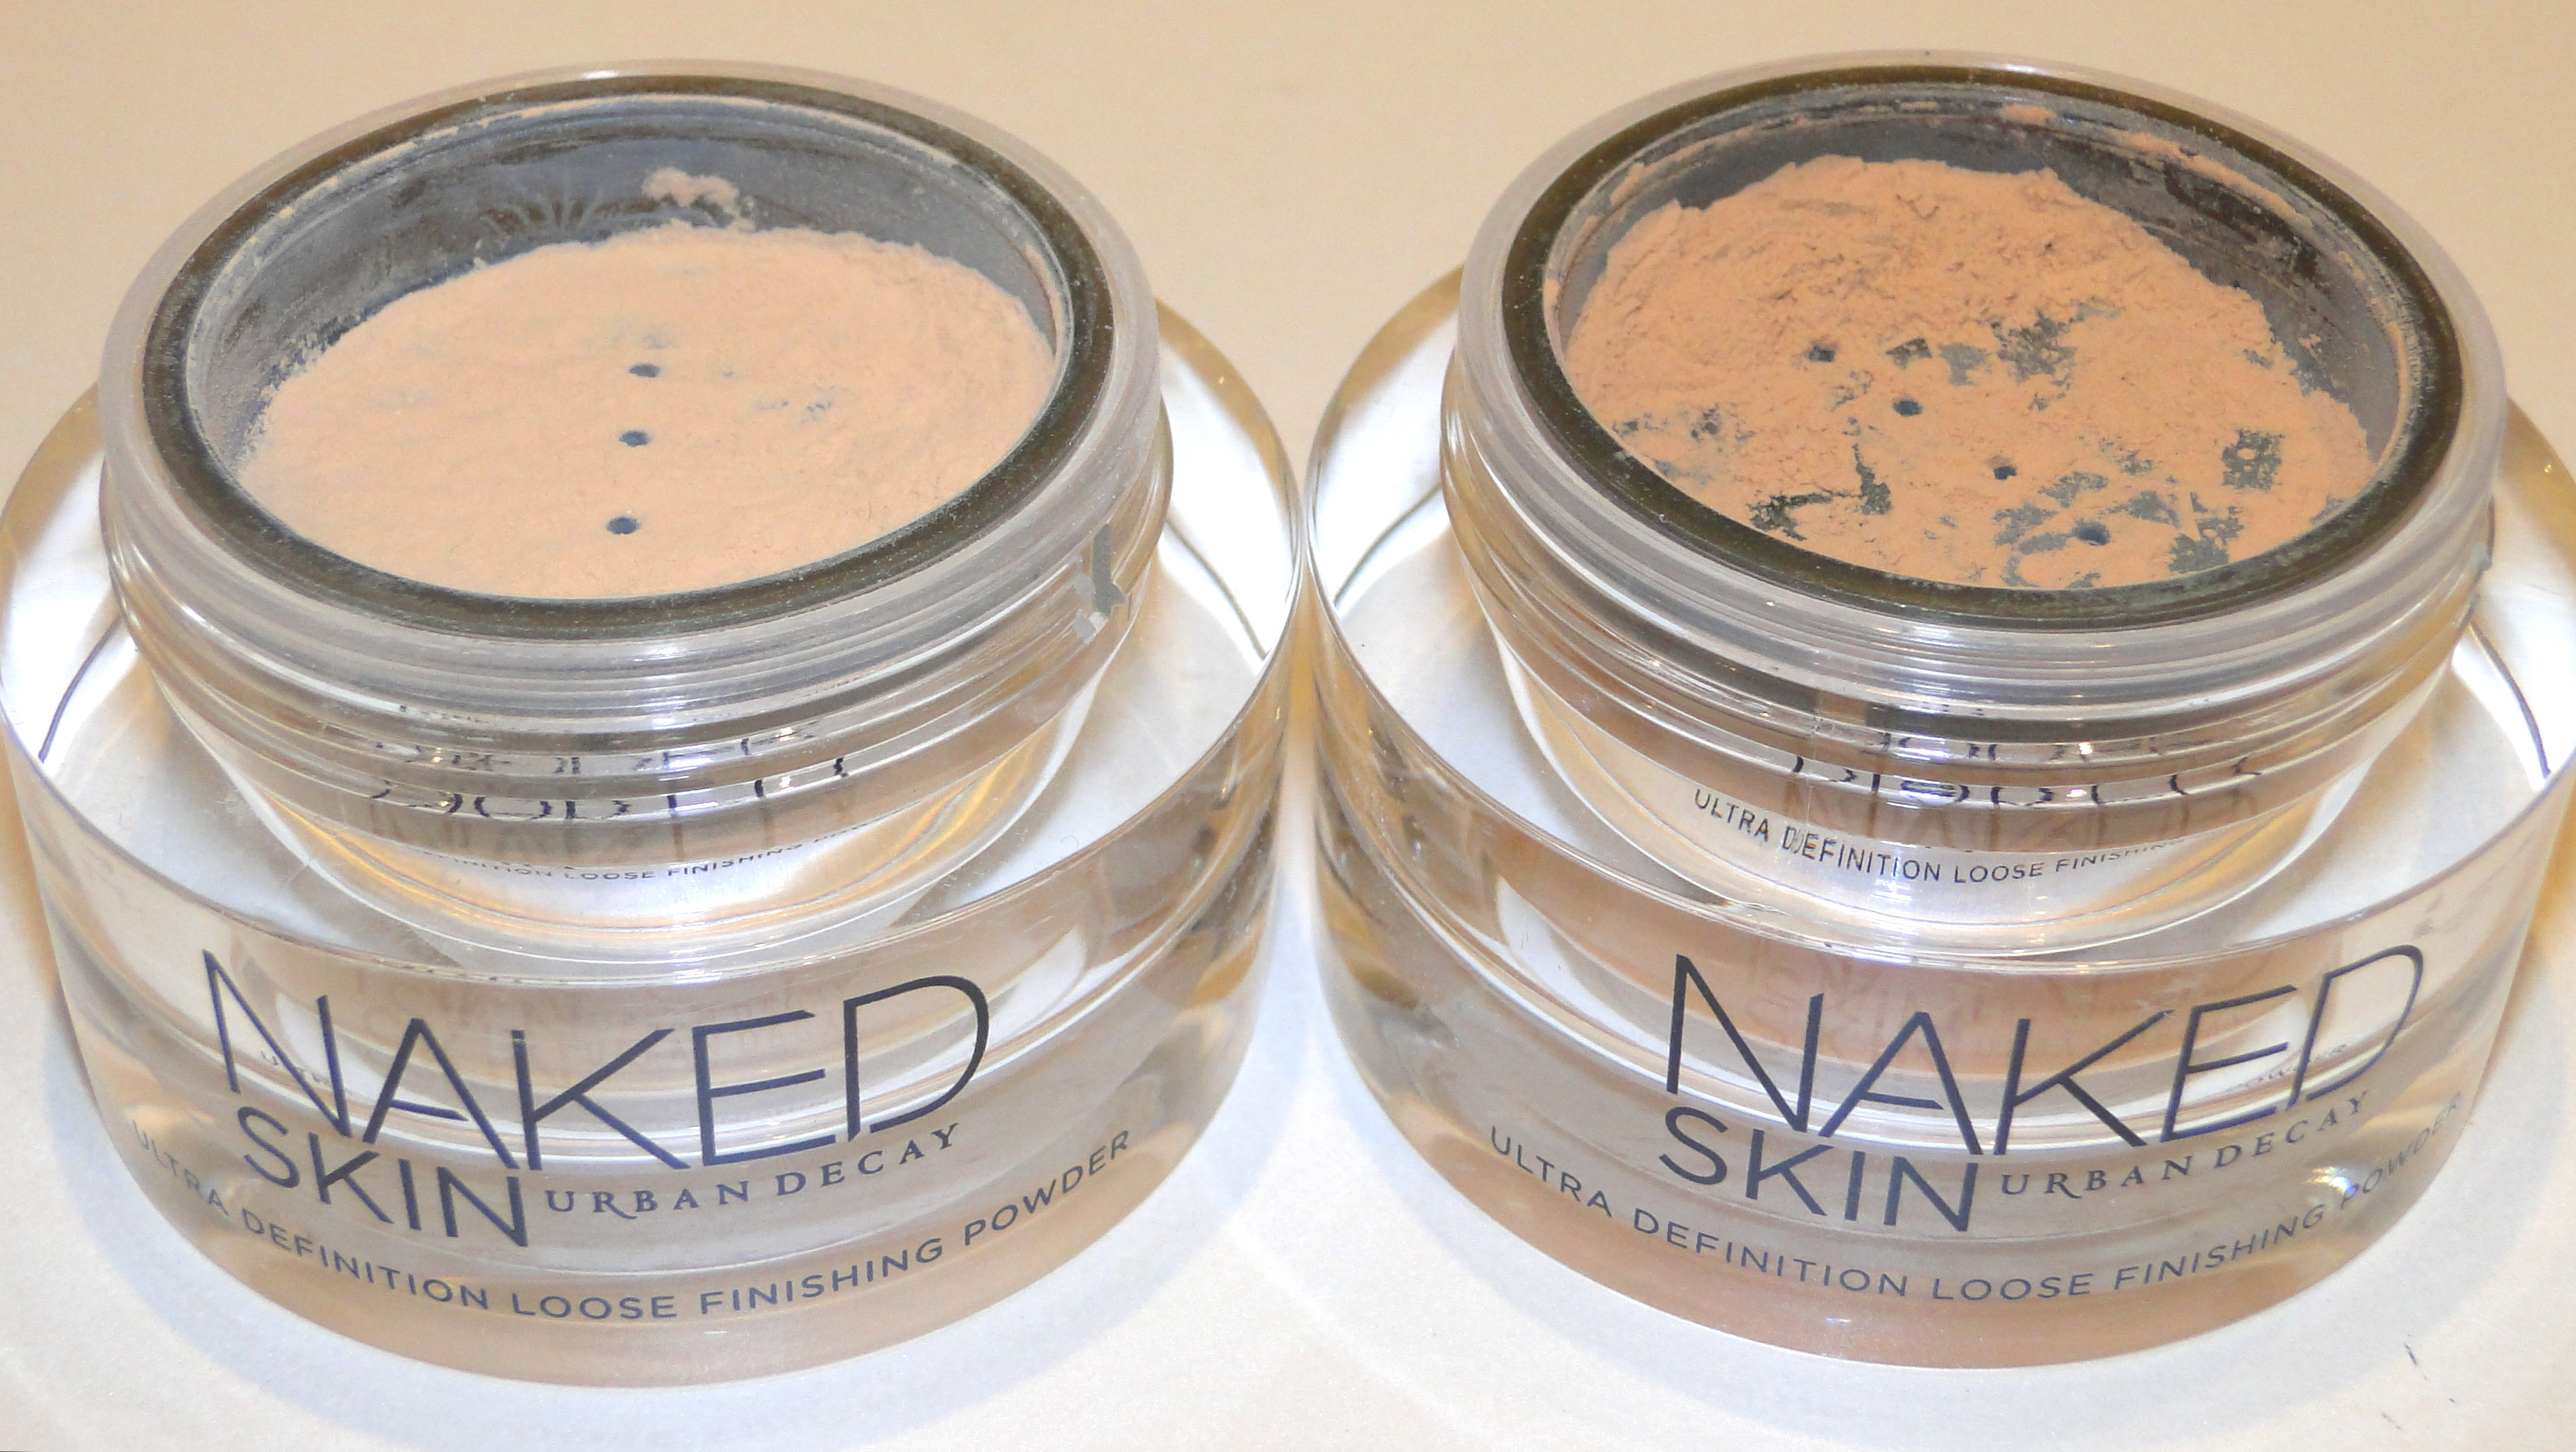 Naked Skin Ultra Definition Loose Finishing Powder by Urban Decay #9